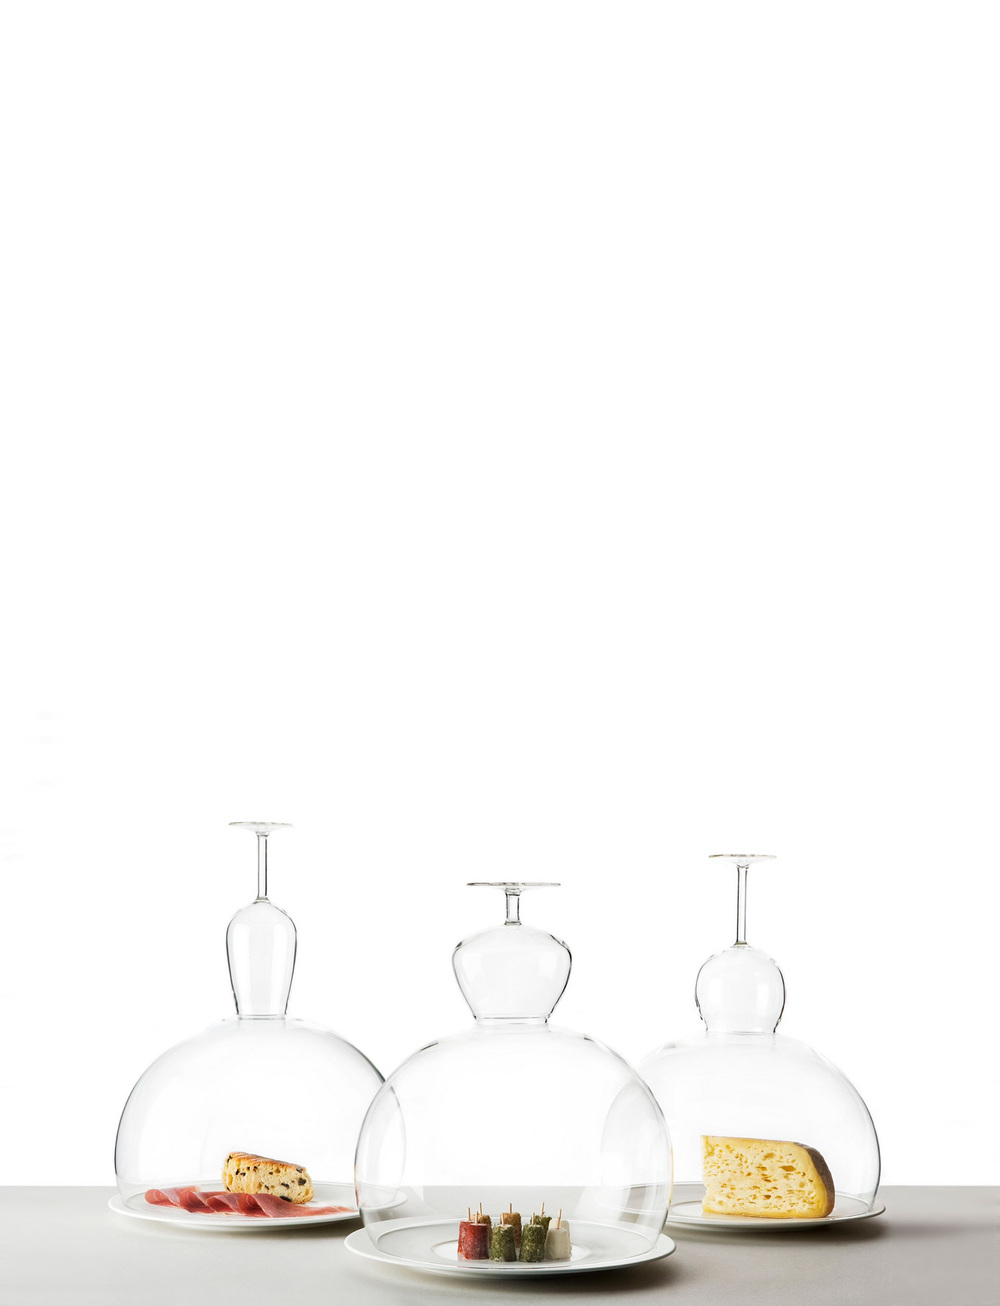 Glass collections | Untypical creations to be used daily, designed by Fabrica.